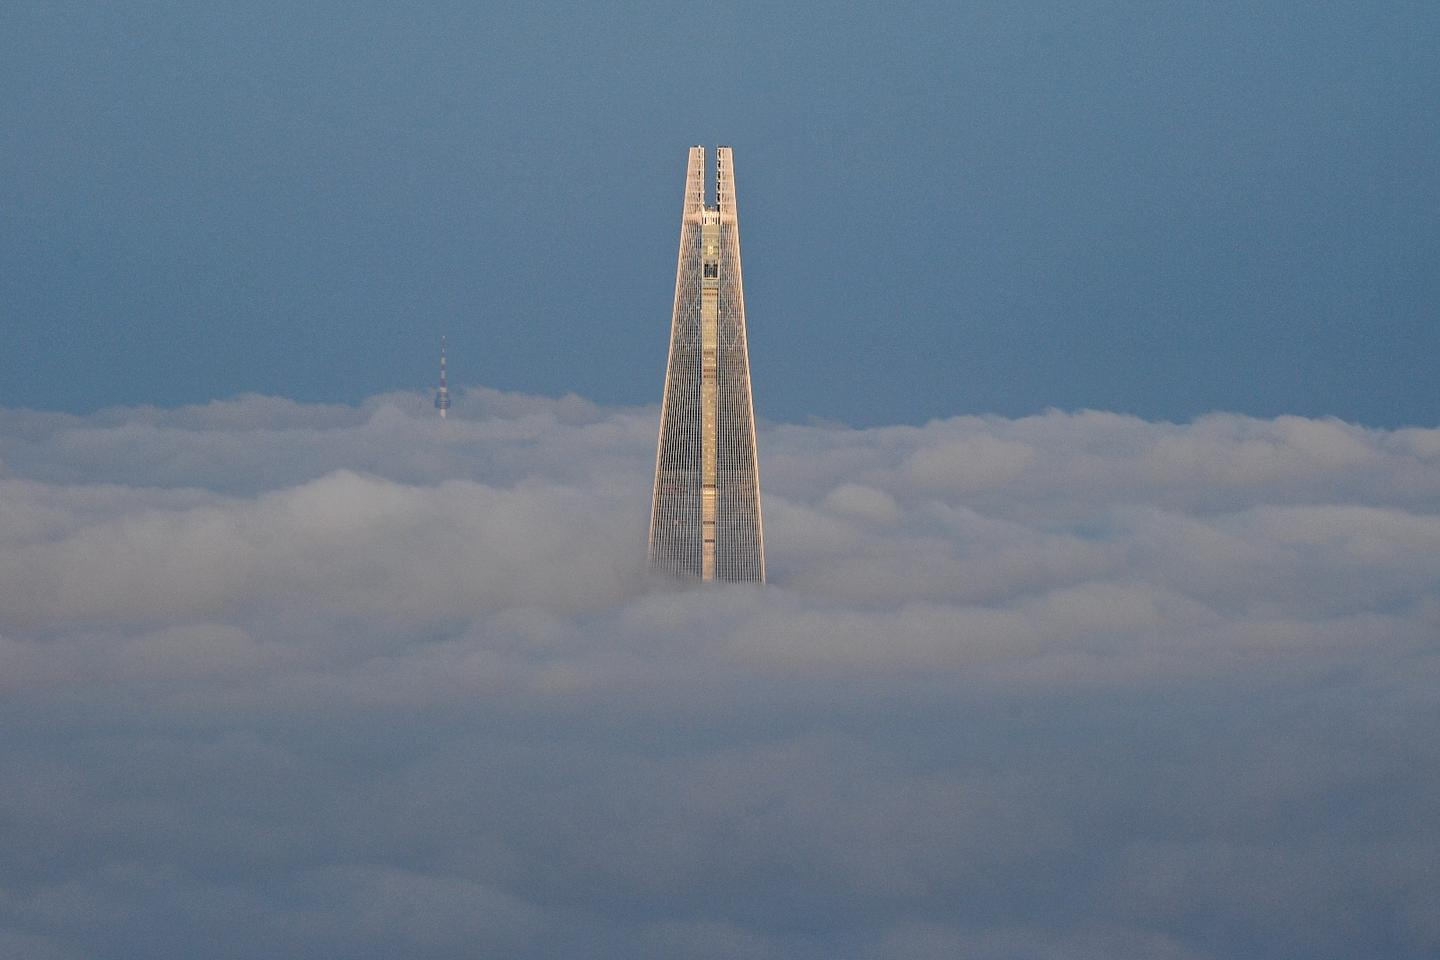 The Lotte World Tower is the world's fifth-tallest building